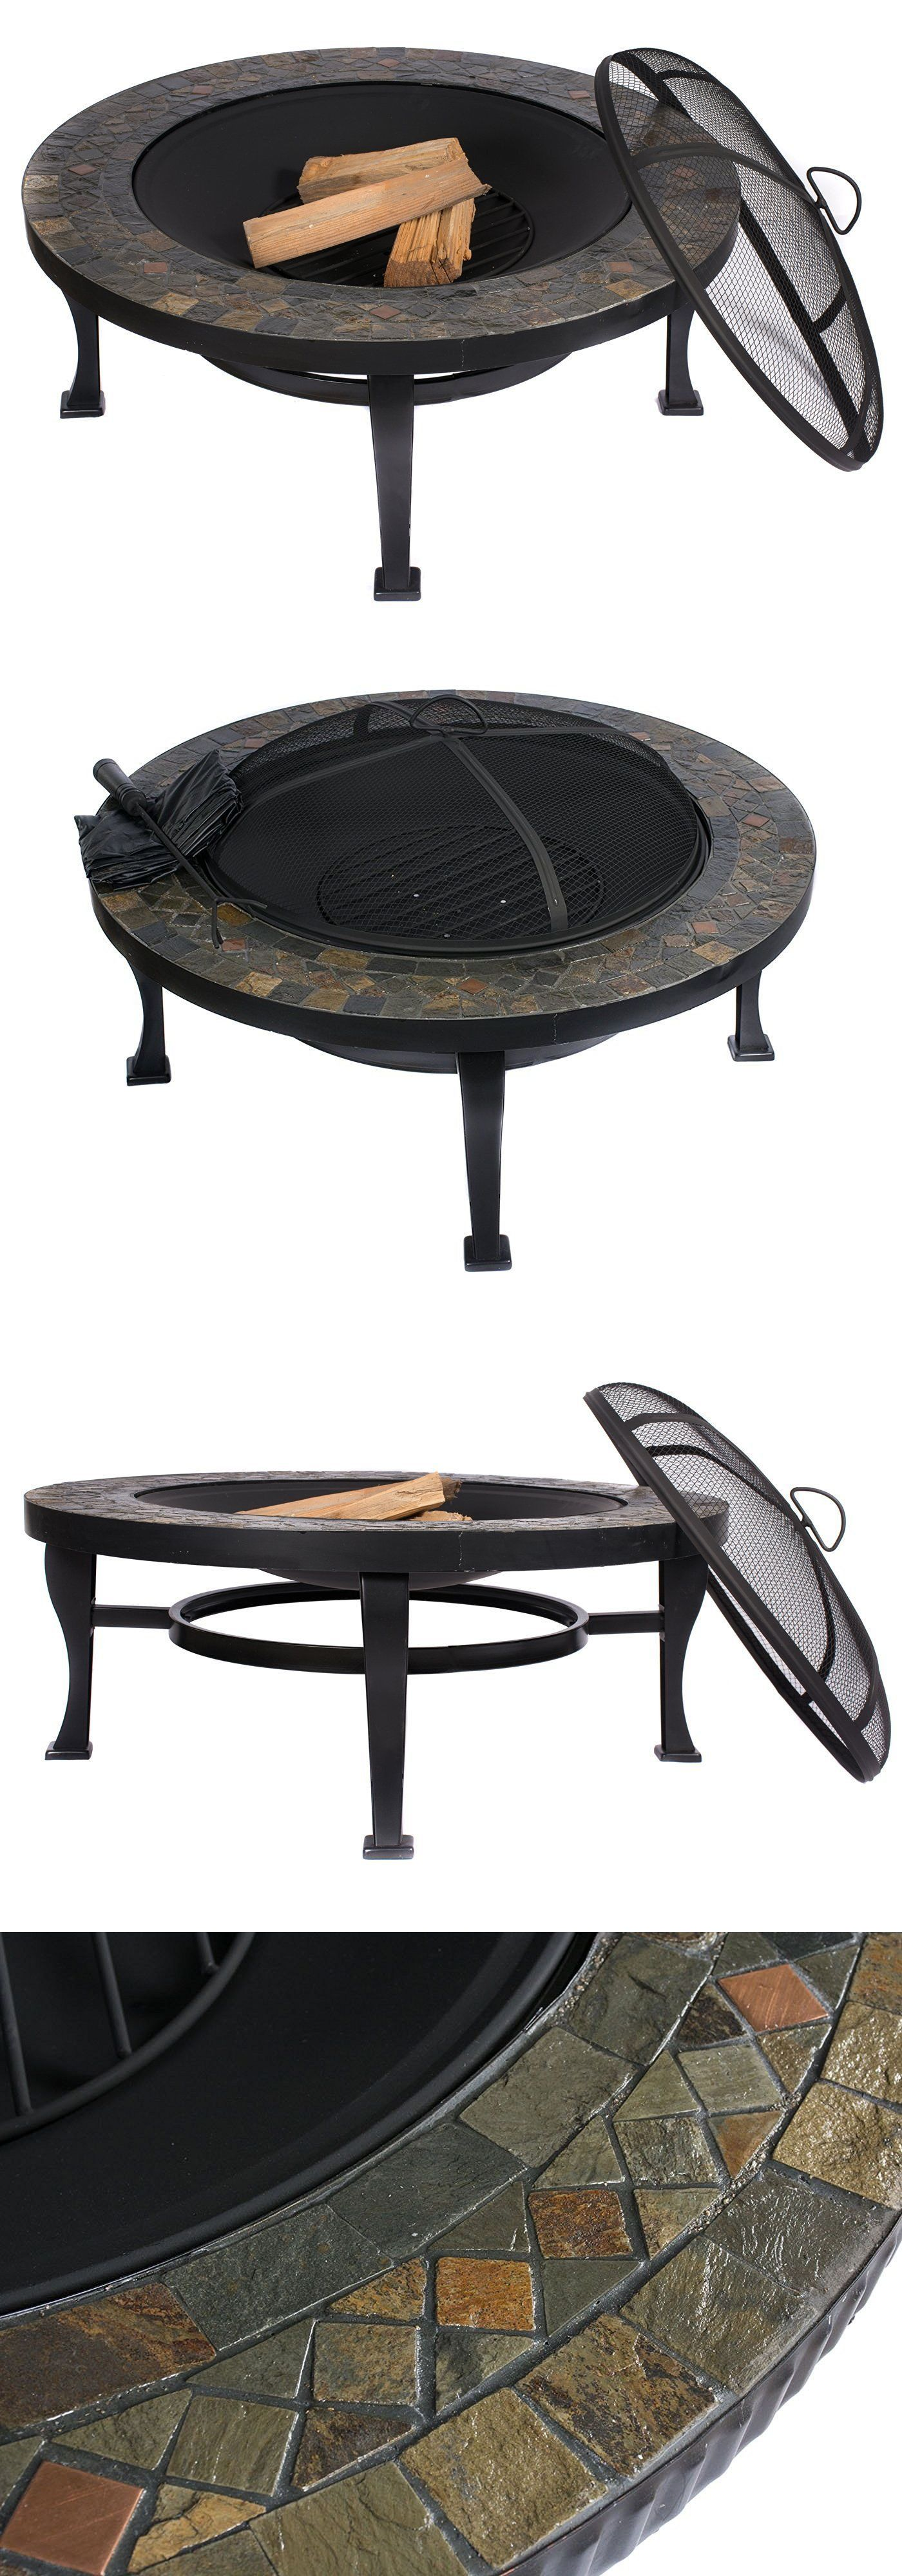 bedfd3305c3603030435f5e408dbc635 Top Result 50 Awesome Fire Pit Grill